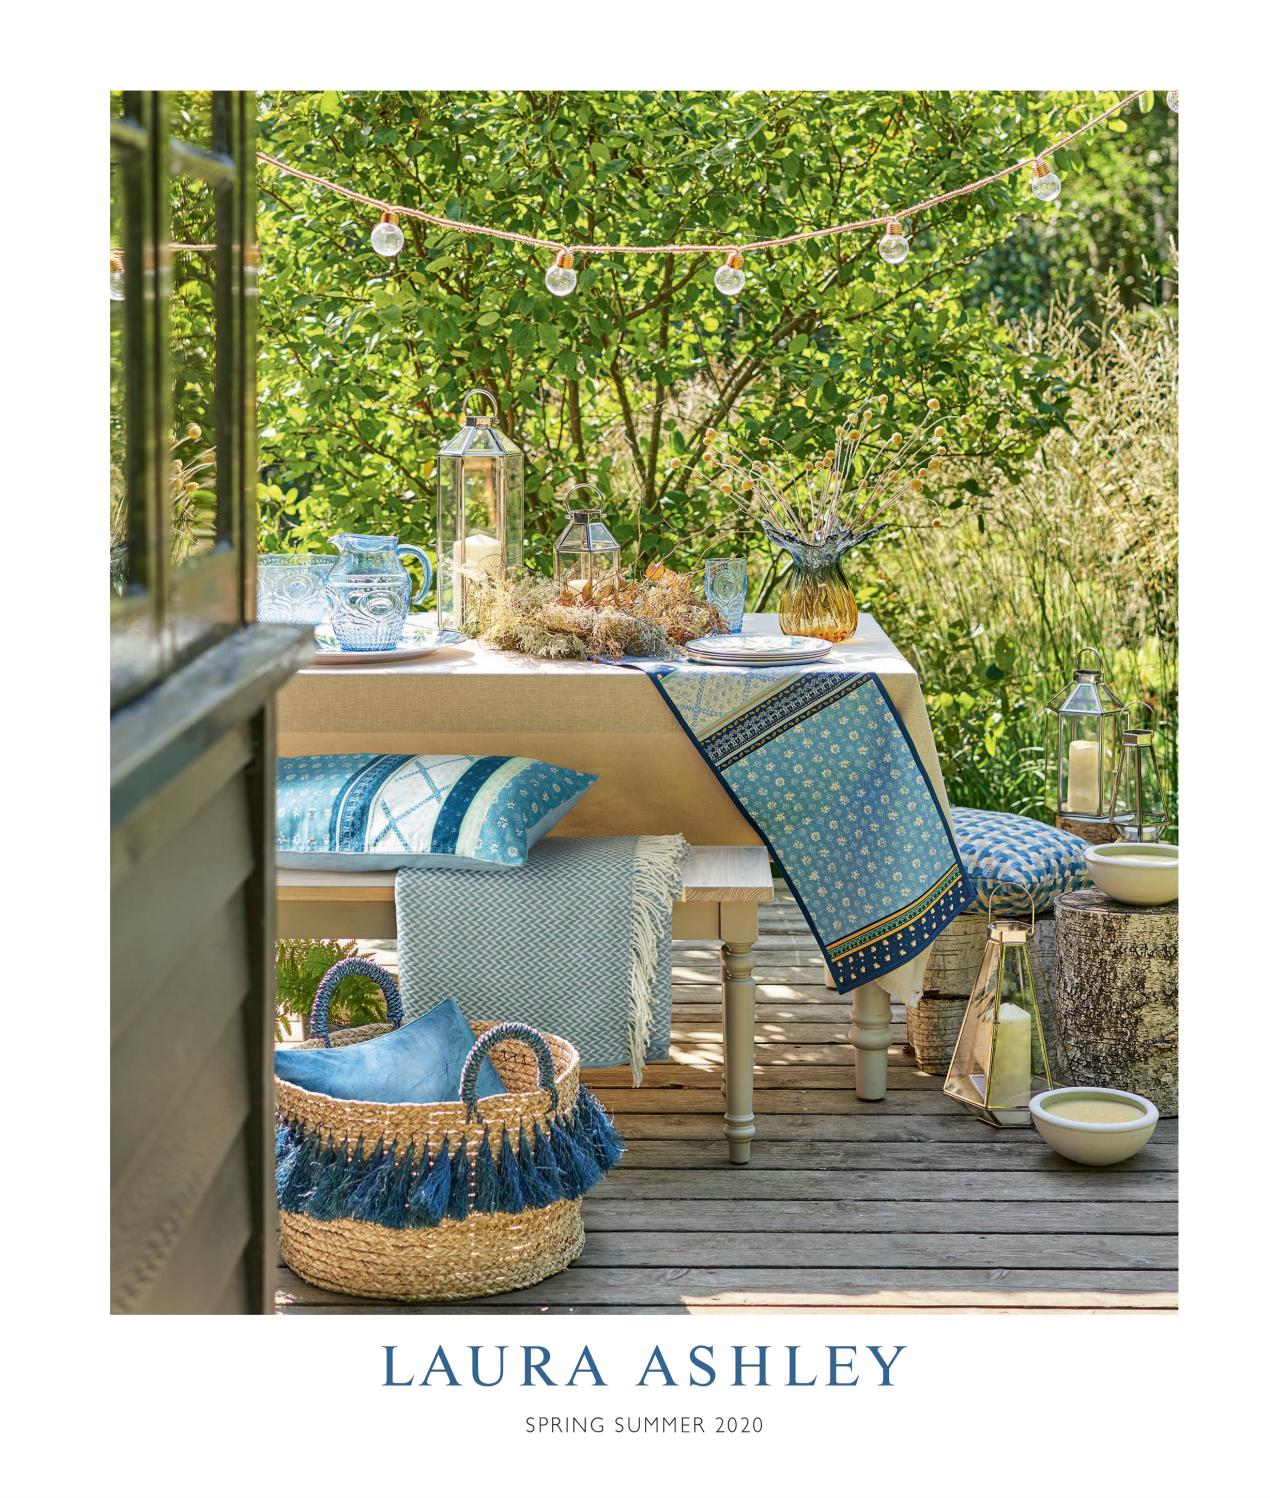 Laura Ashley Home Spring Summer 2020 Catalogue By Sandpiper Ci Issuu - Garden Furniture Clearance Company Dorset